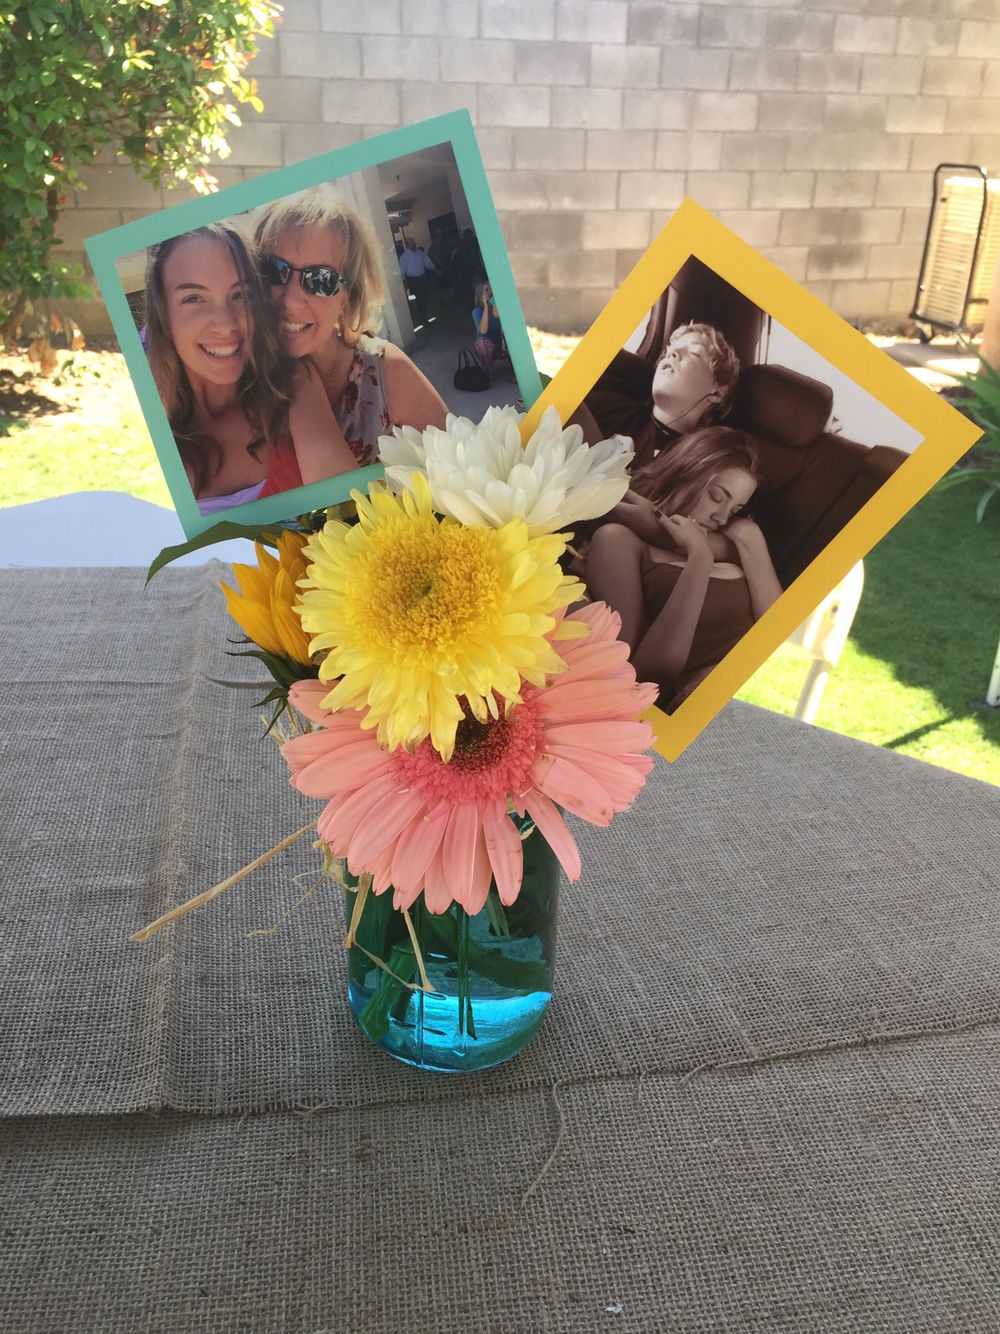 Colorful centerpieces on burlap tablecloths. Then and now pictures, in blue mason jars with raffia bow, gerber daisies with sunflowers.